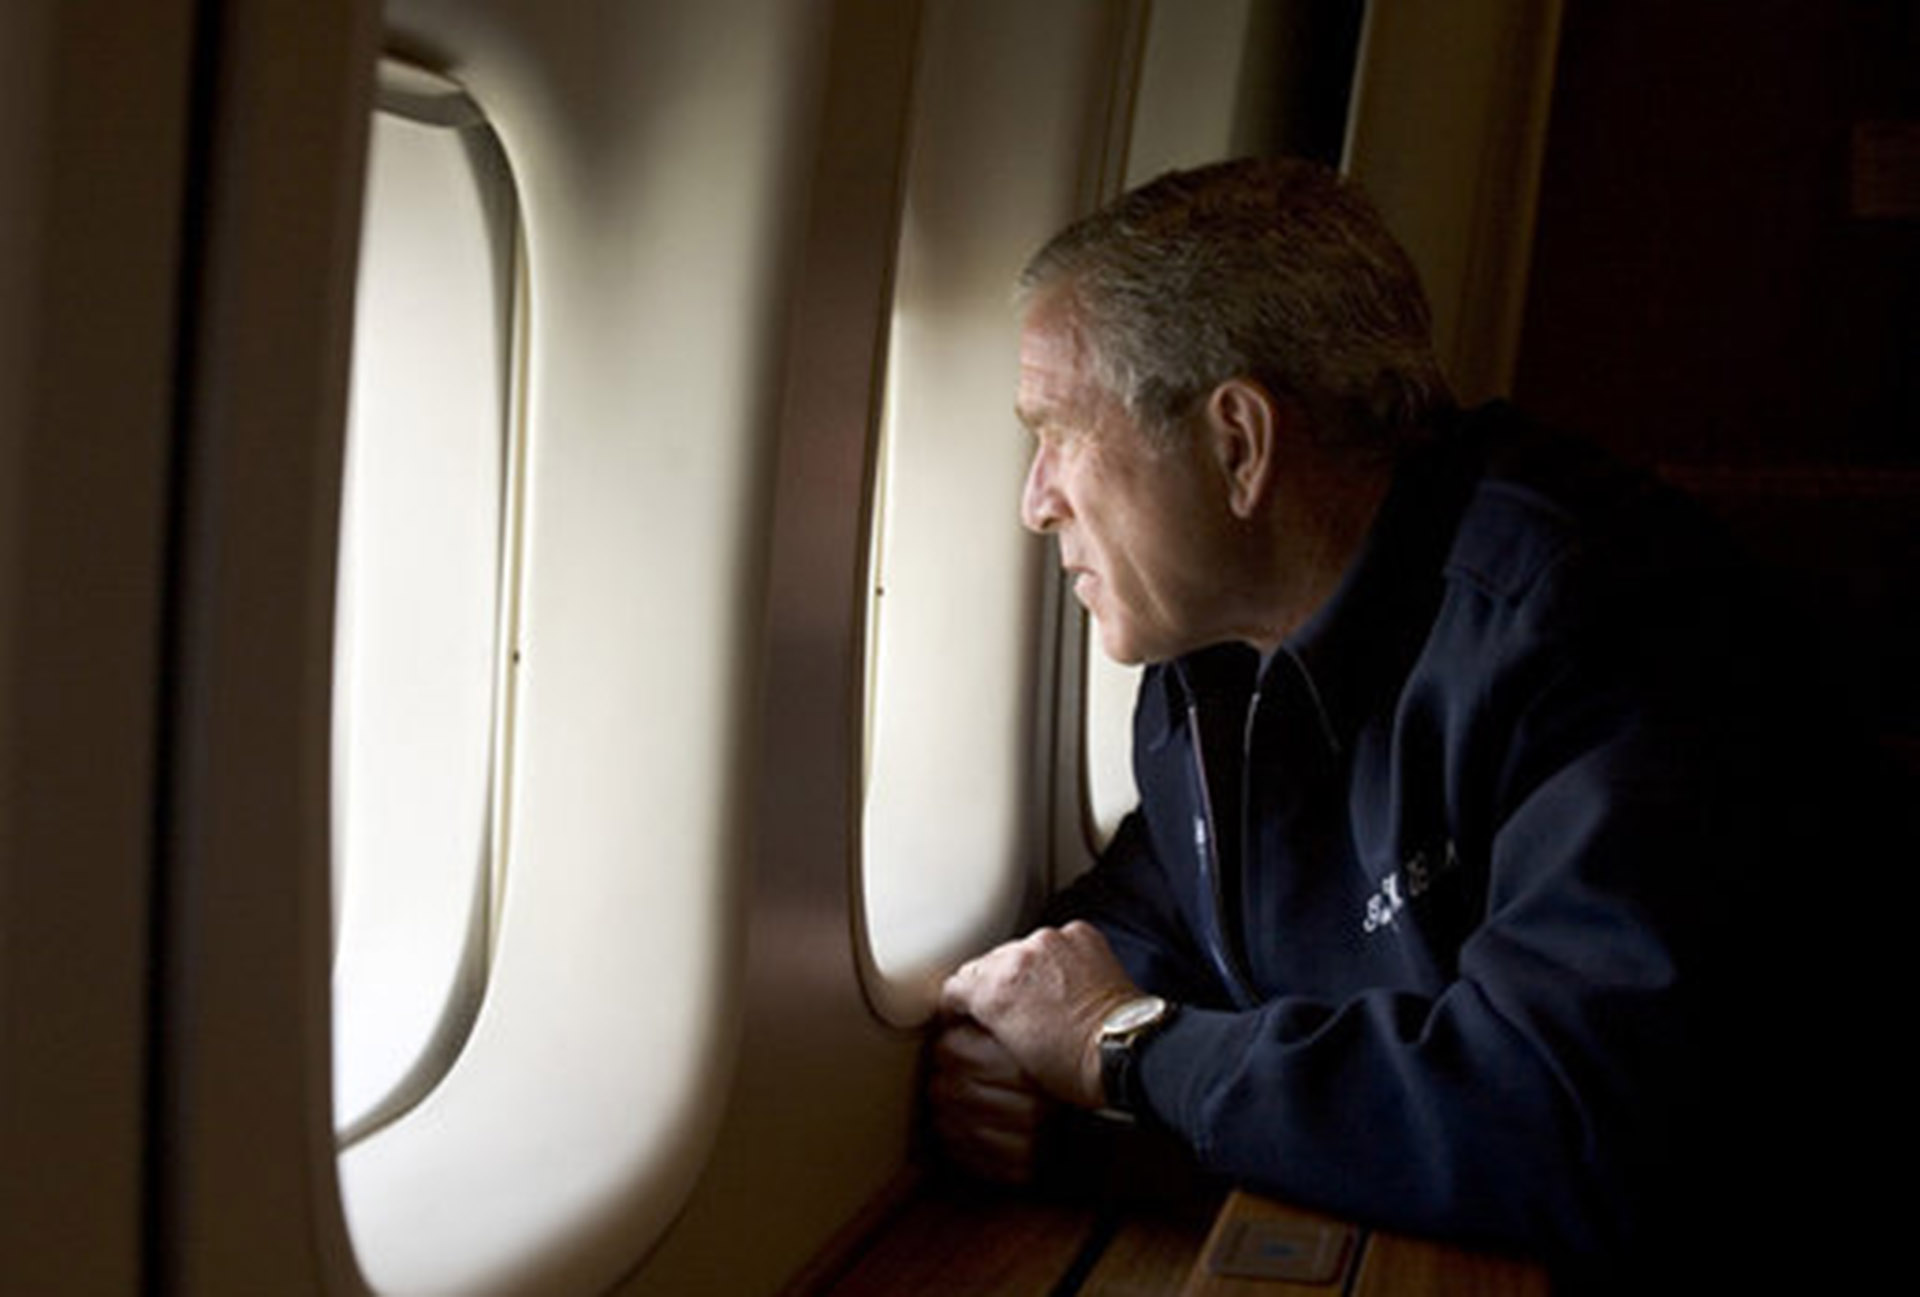 GWB: President George W. Bush looks out over devastation from Hurricane Katrina as he heads back to Washington DC Wednesday, Aug. 31, 2005, aboard Air Force One. White House photo by Paul Morse